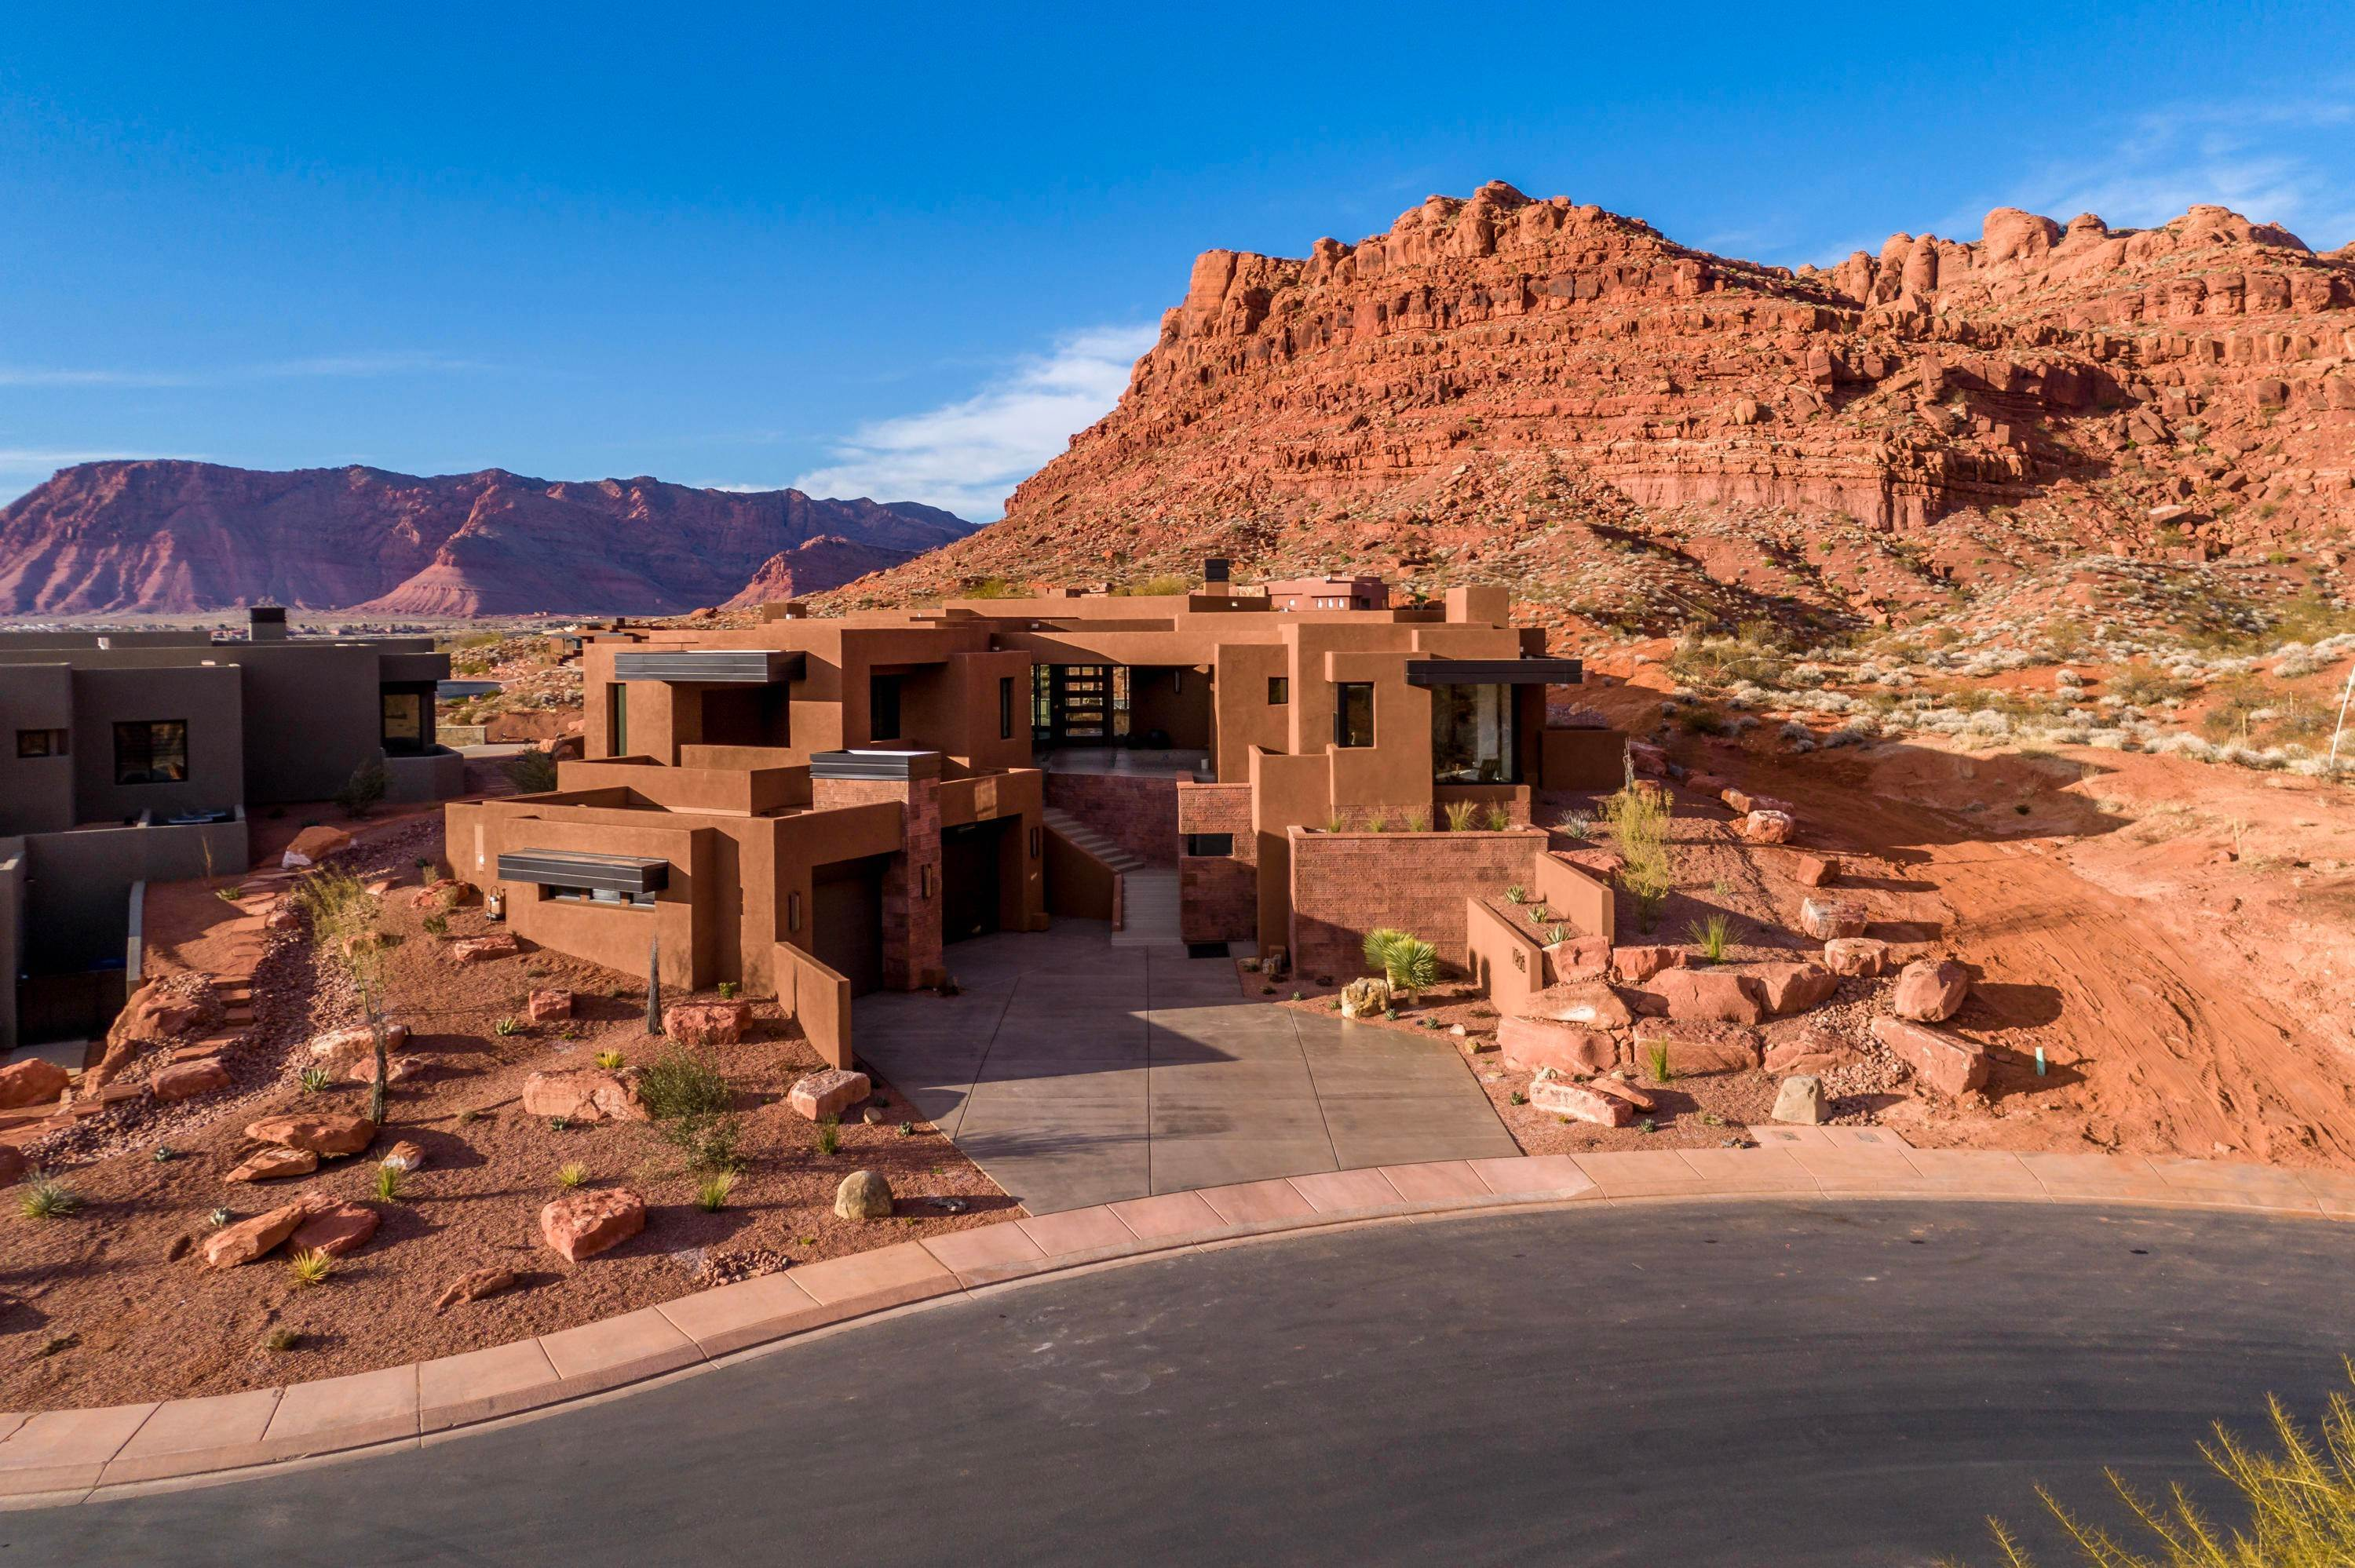 Single Family Homes for Sale at Kachina Vistas Drive St. George, Utah 84770 United States